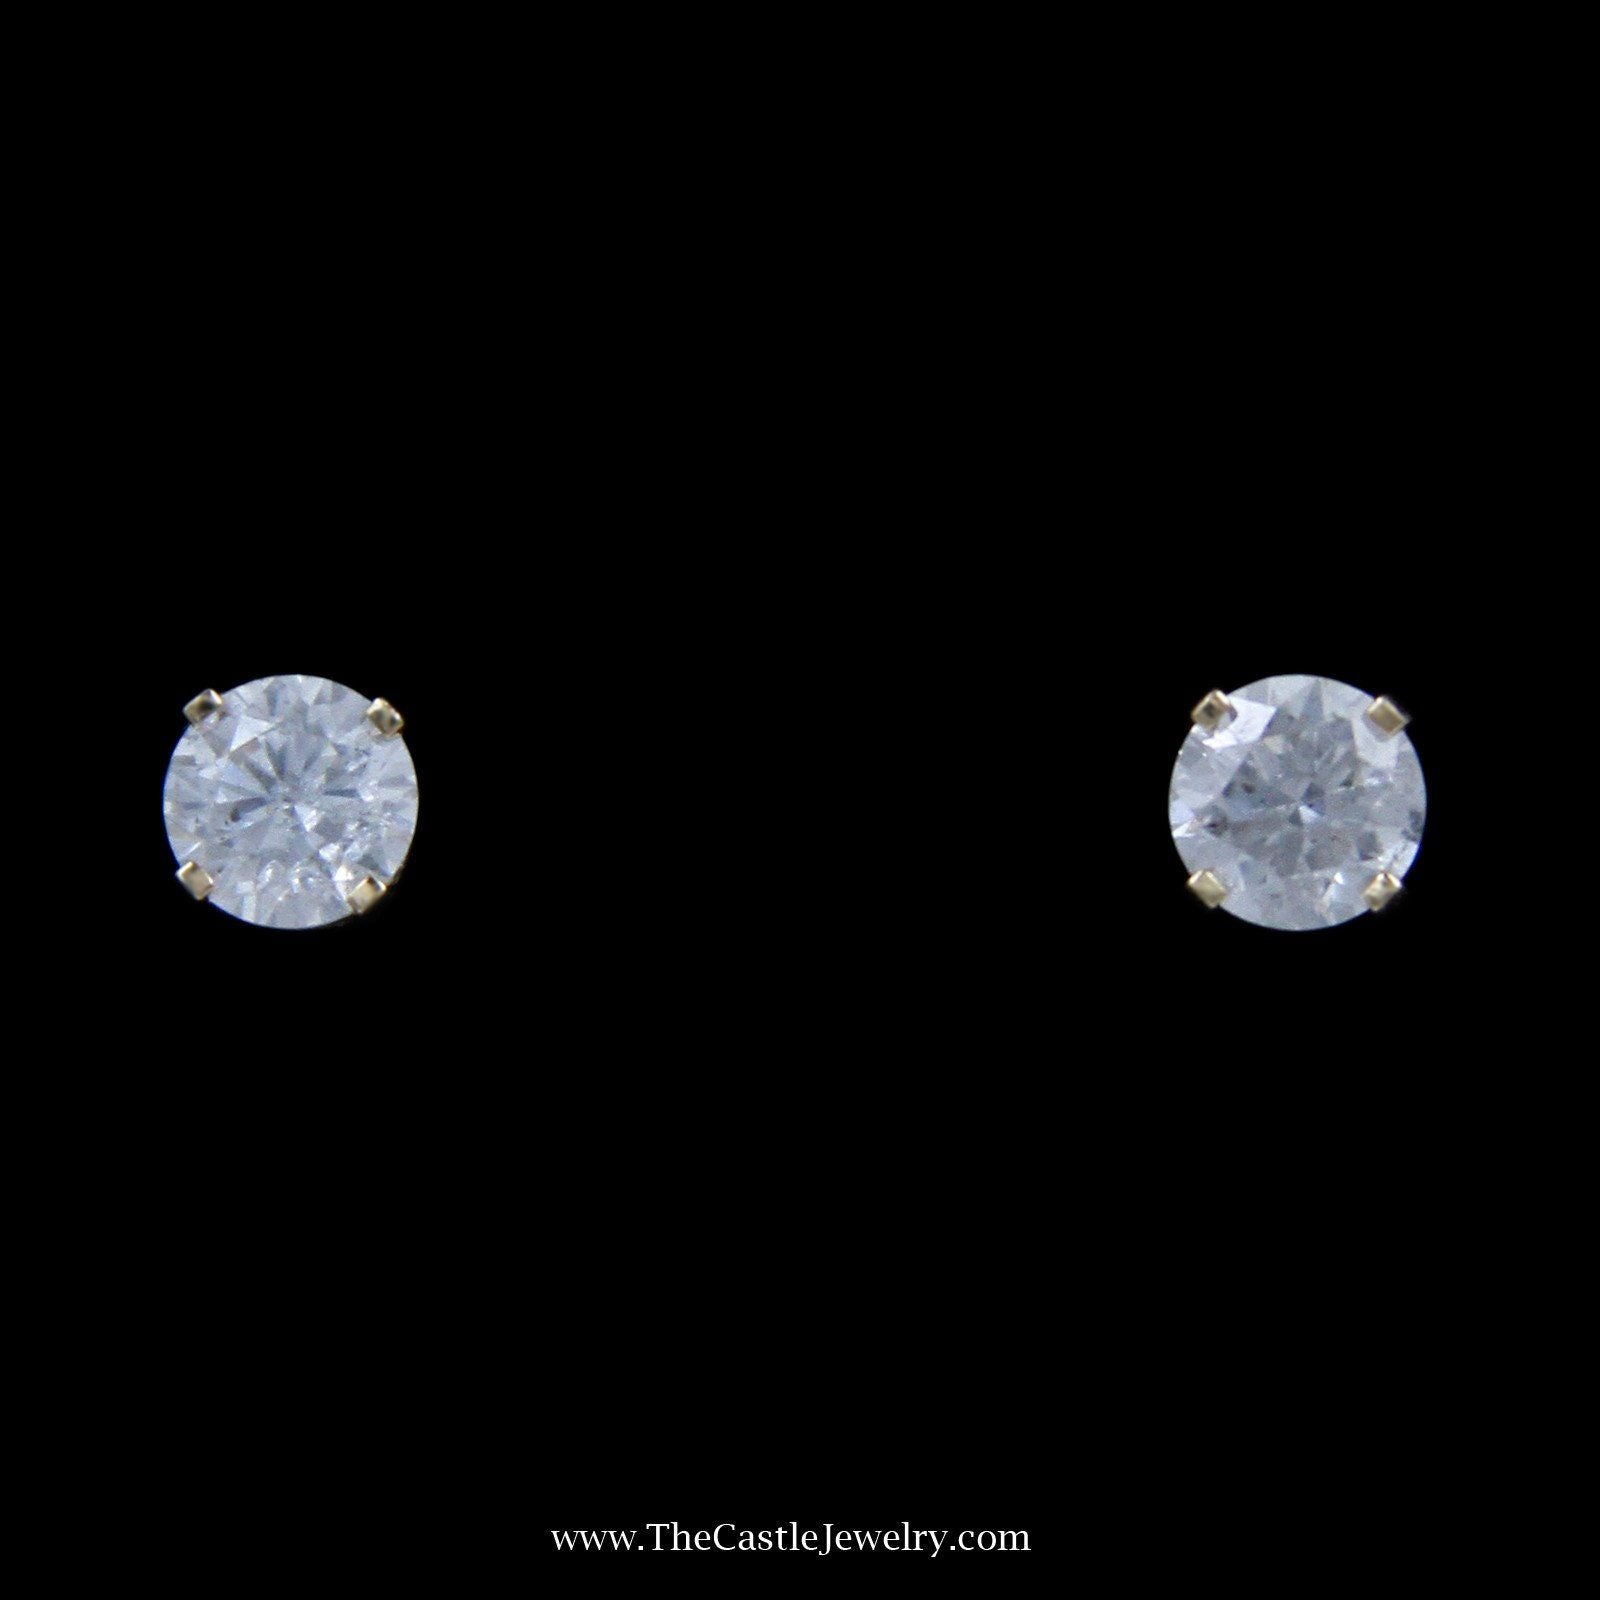 Stunning 1cttw Round Brilliant Cut Diamond Stud Earrings in Yellow Gold-0